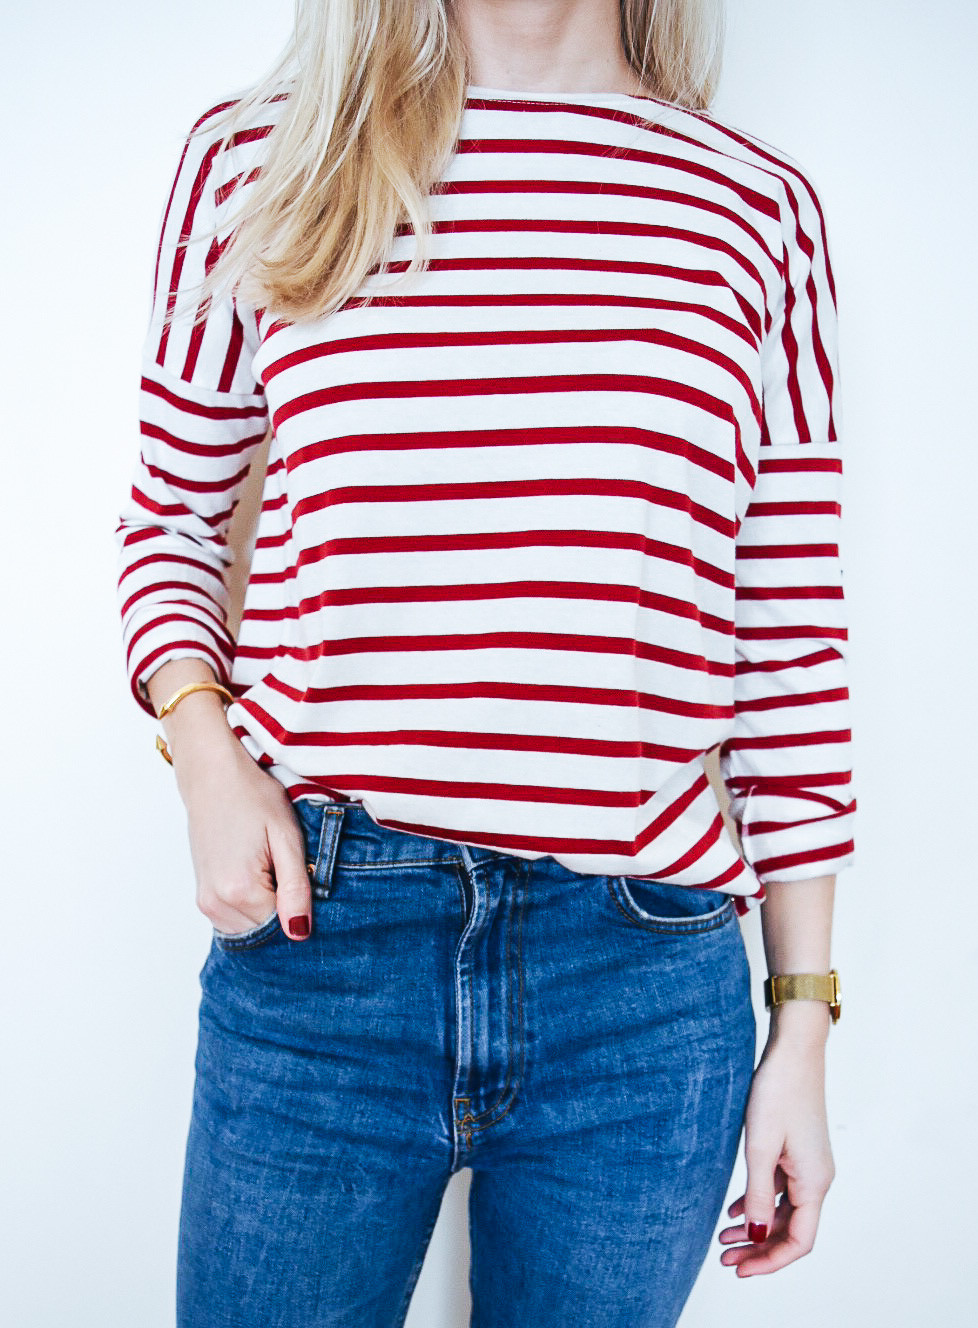 Saint James x J.Crew Slouchy Tee